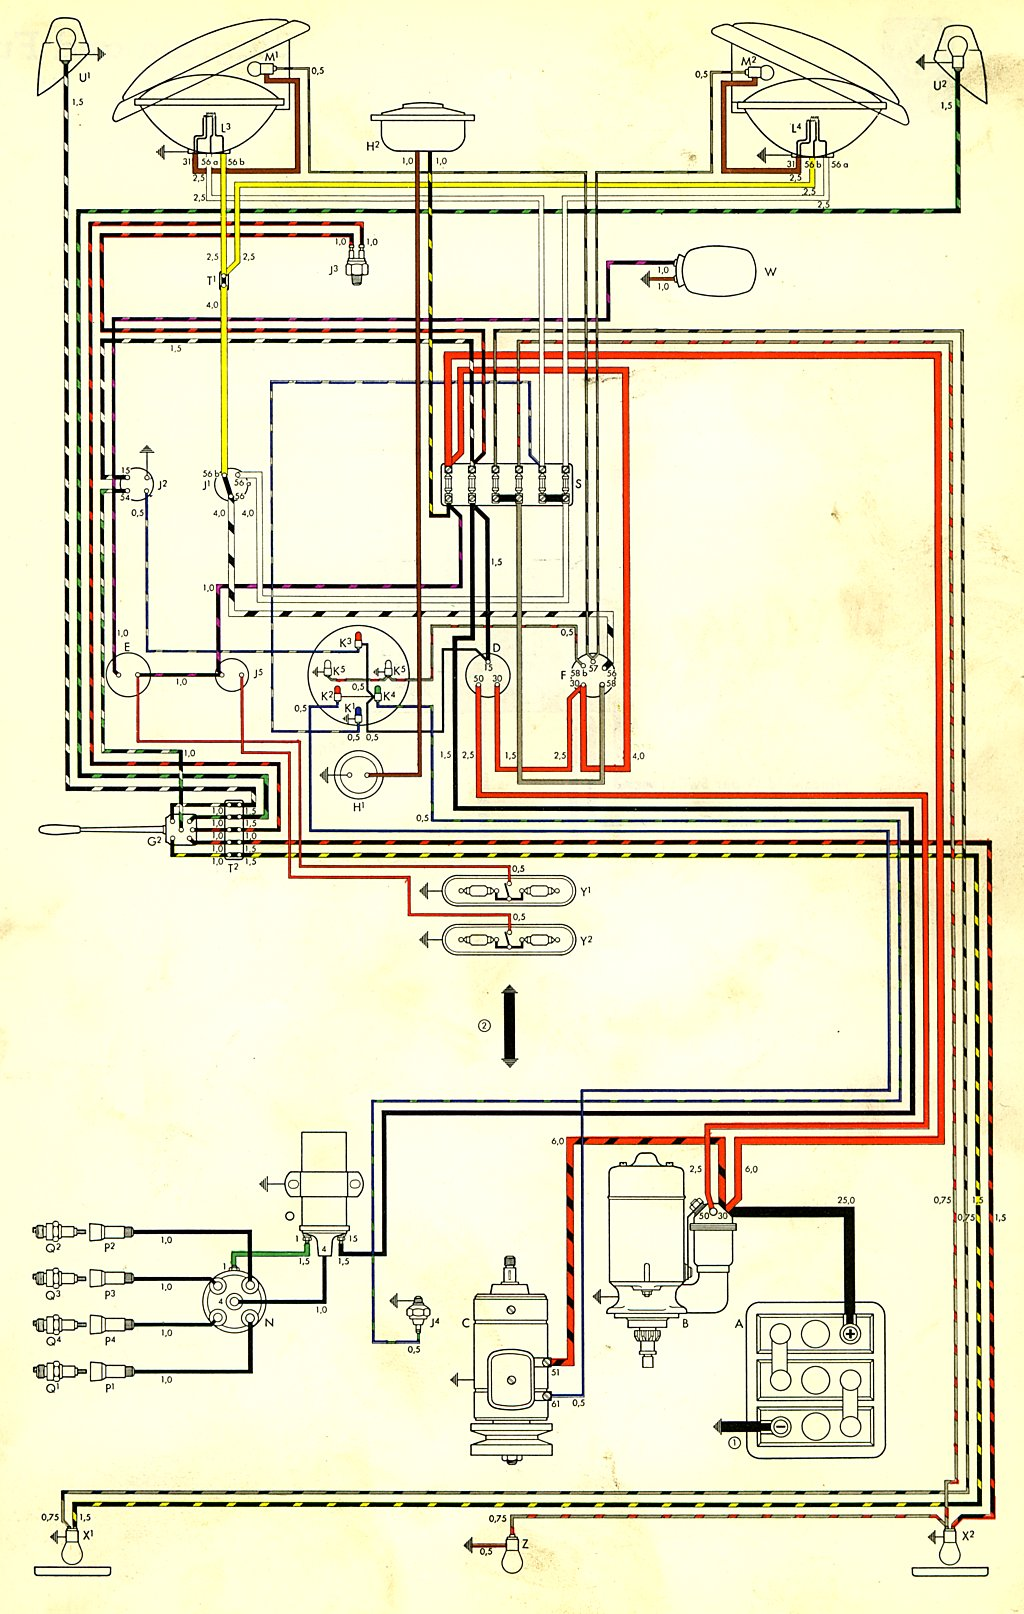 bus_59_USA thesamba com type 2 wiring diagrams 1957 vw bug wiring diagram at soozxer.org